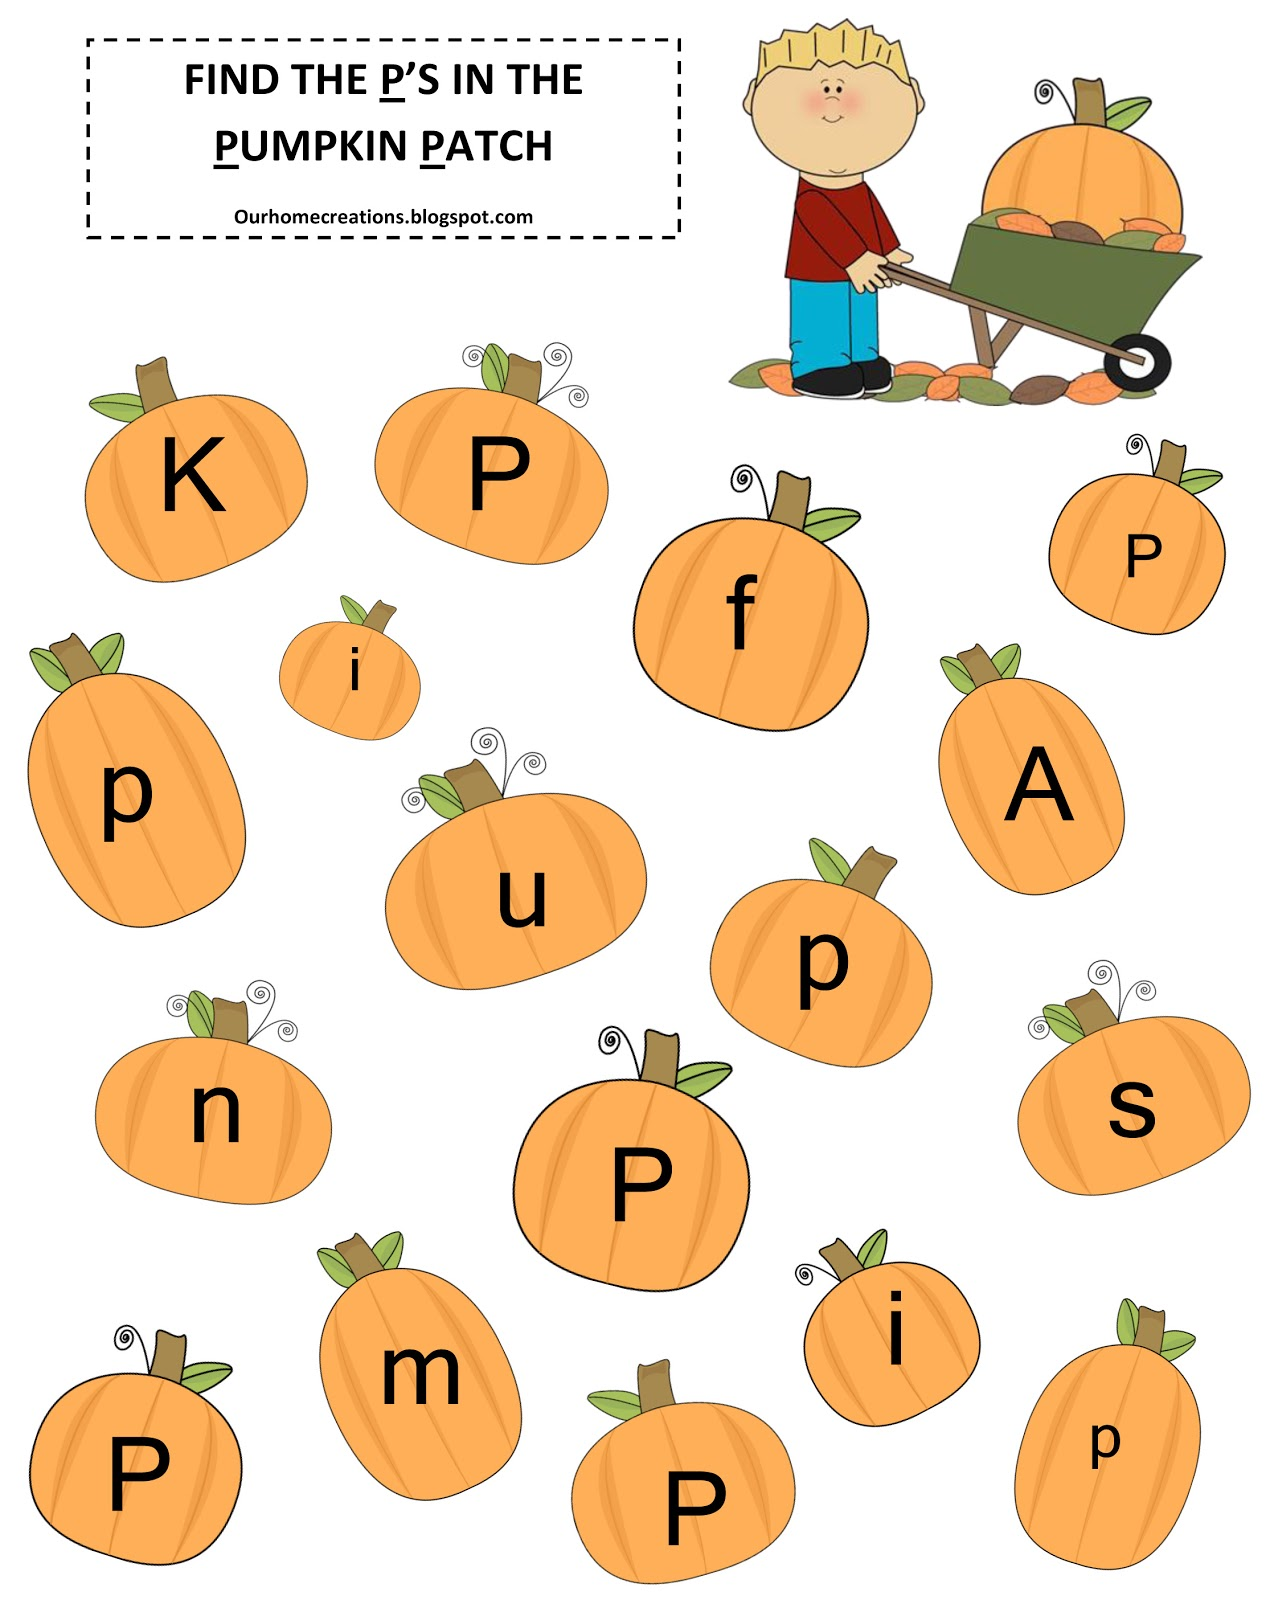 Ourhomecreations Free Printable Alphabet Letter Worksheets